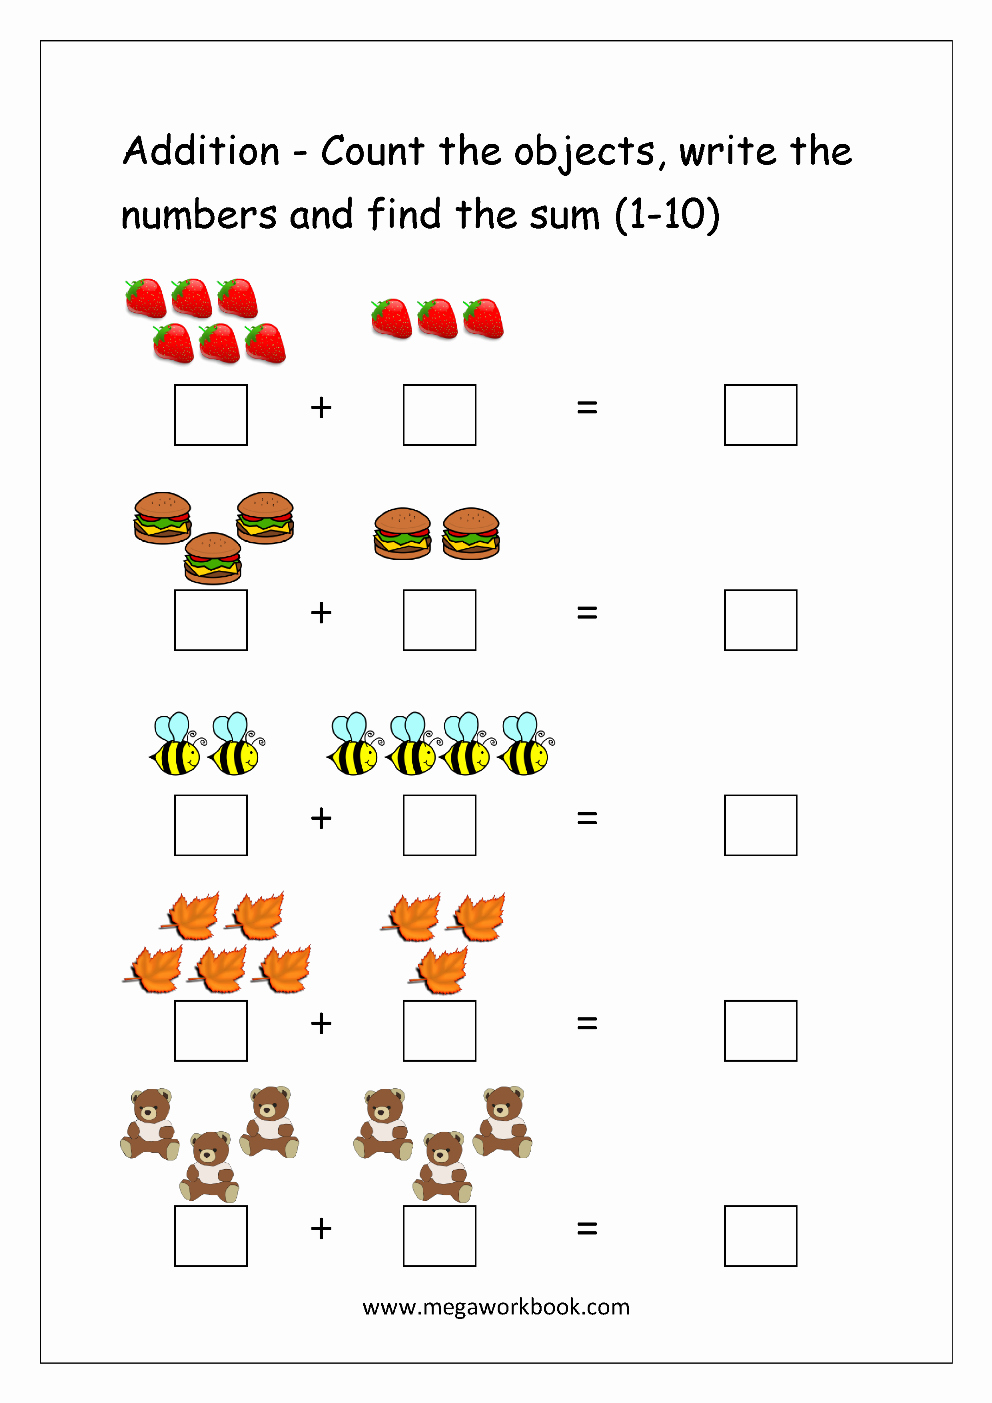 Addition Worksheets with Pictures Unique Free Printable Number Addition Worksheets 1 10 for